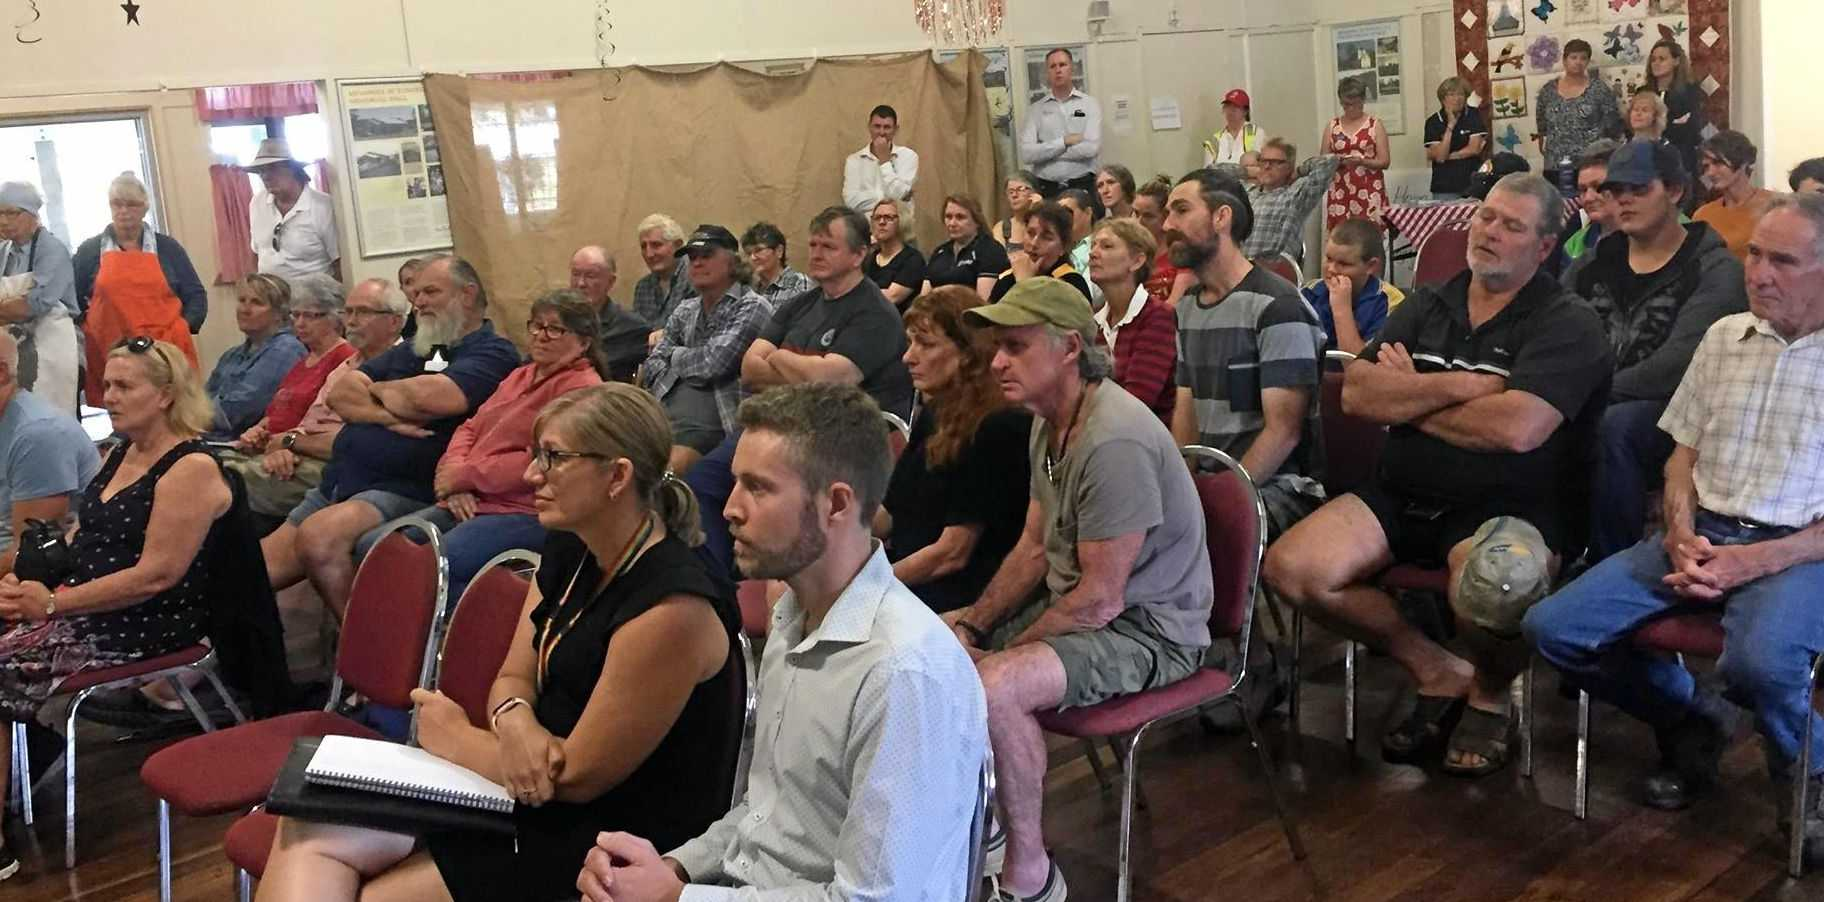 COMMUNITY UNITED: Dozens of Eungella residents gathered to Memorial Hall to discuss a host of issues related to the recent bush fires.